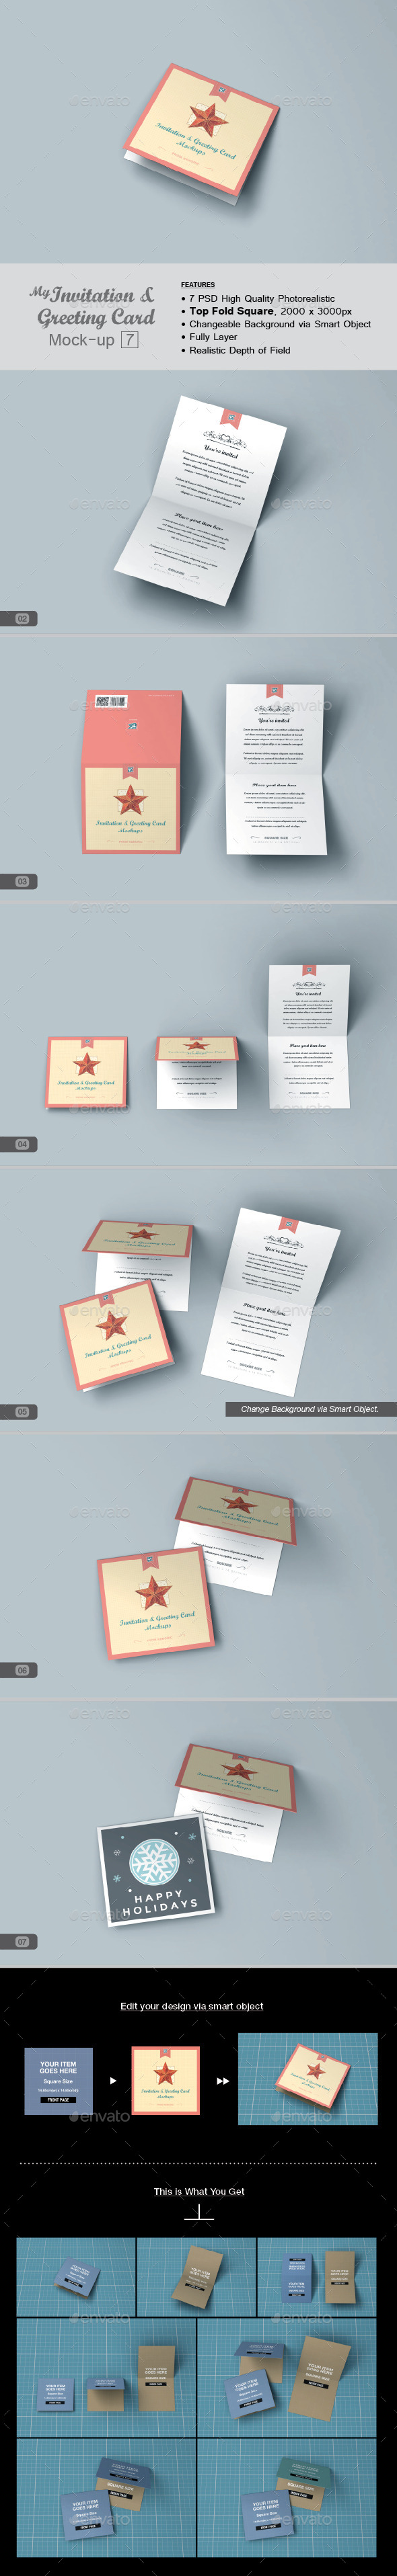 GraphicRiver myGreeting Card Mock-up v7 11585378